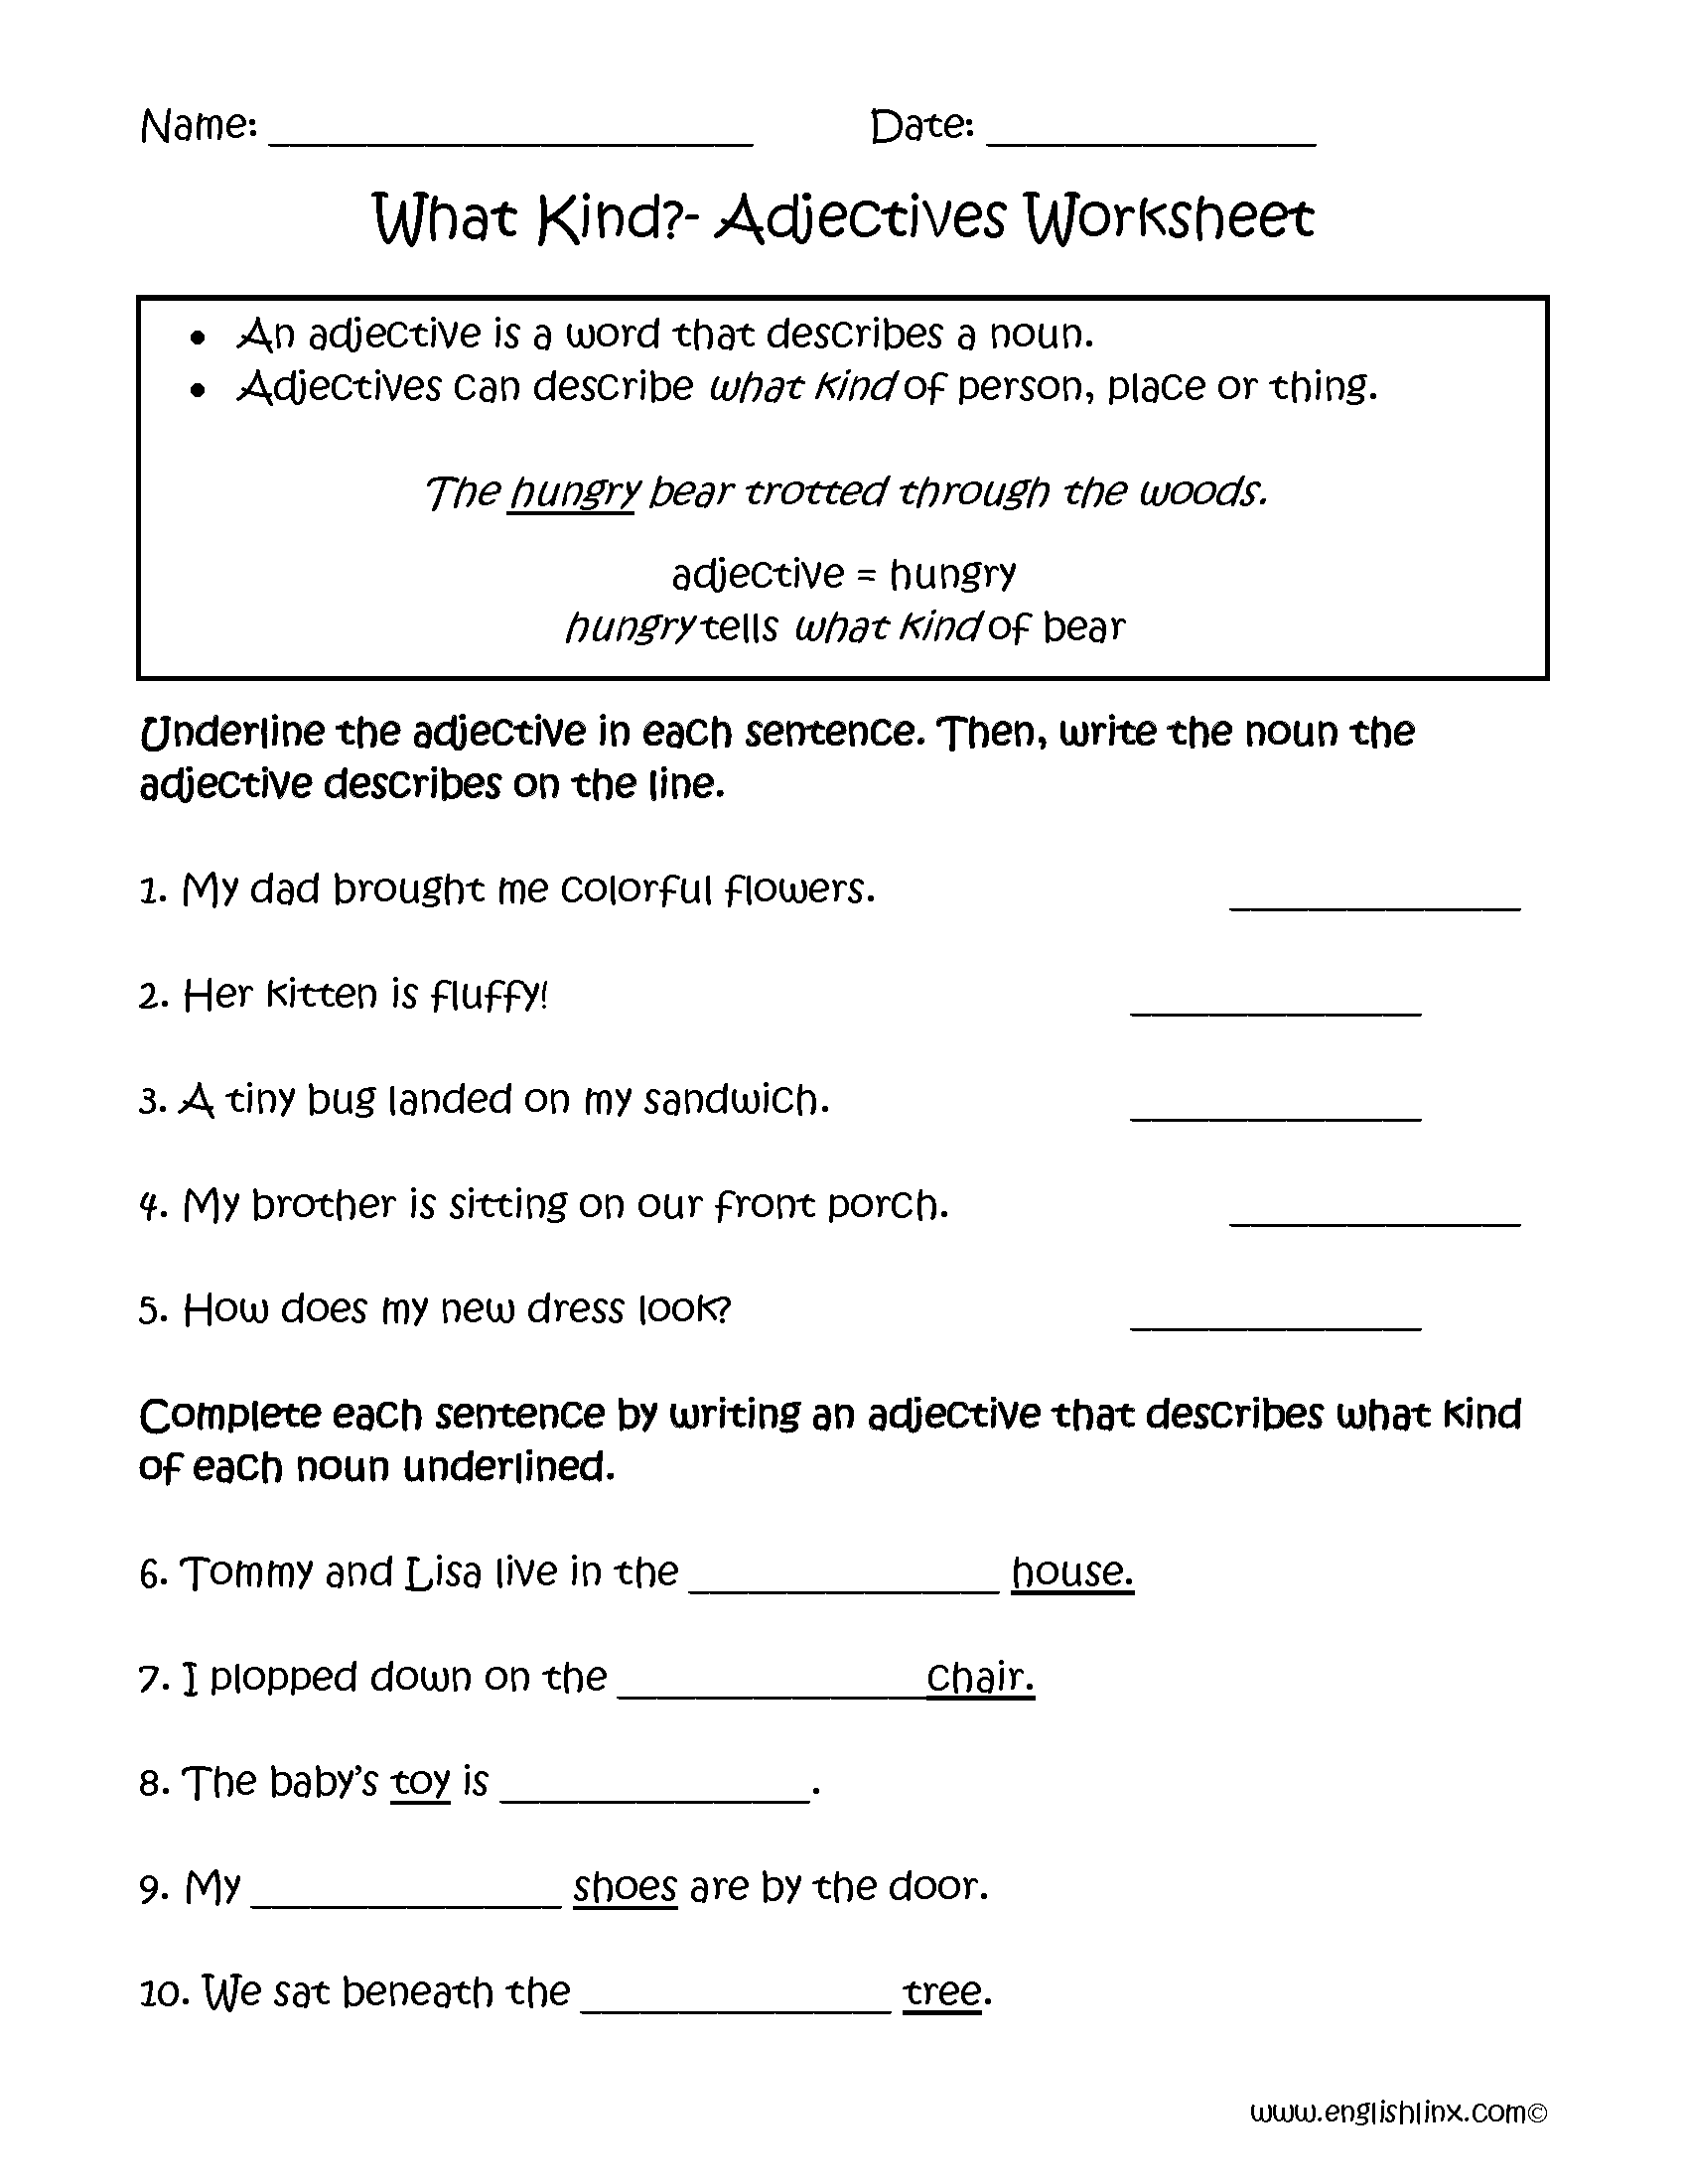 What Kind Adjectives Worksheets Teaching Adjectivesadverbs